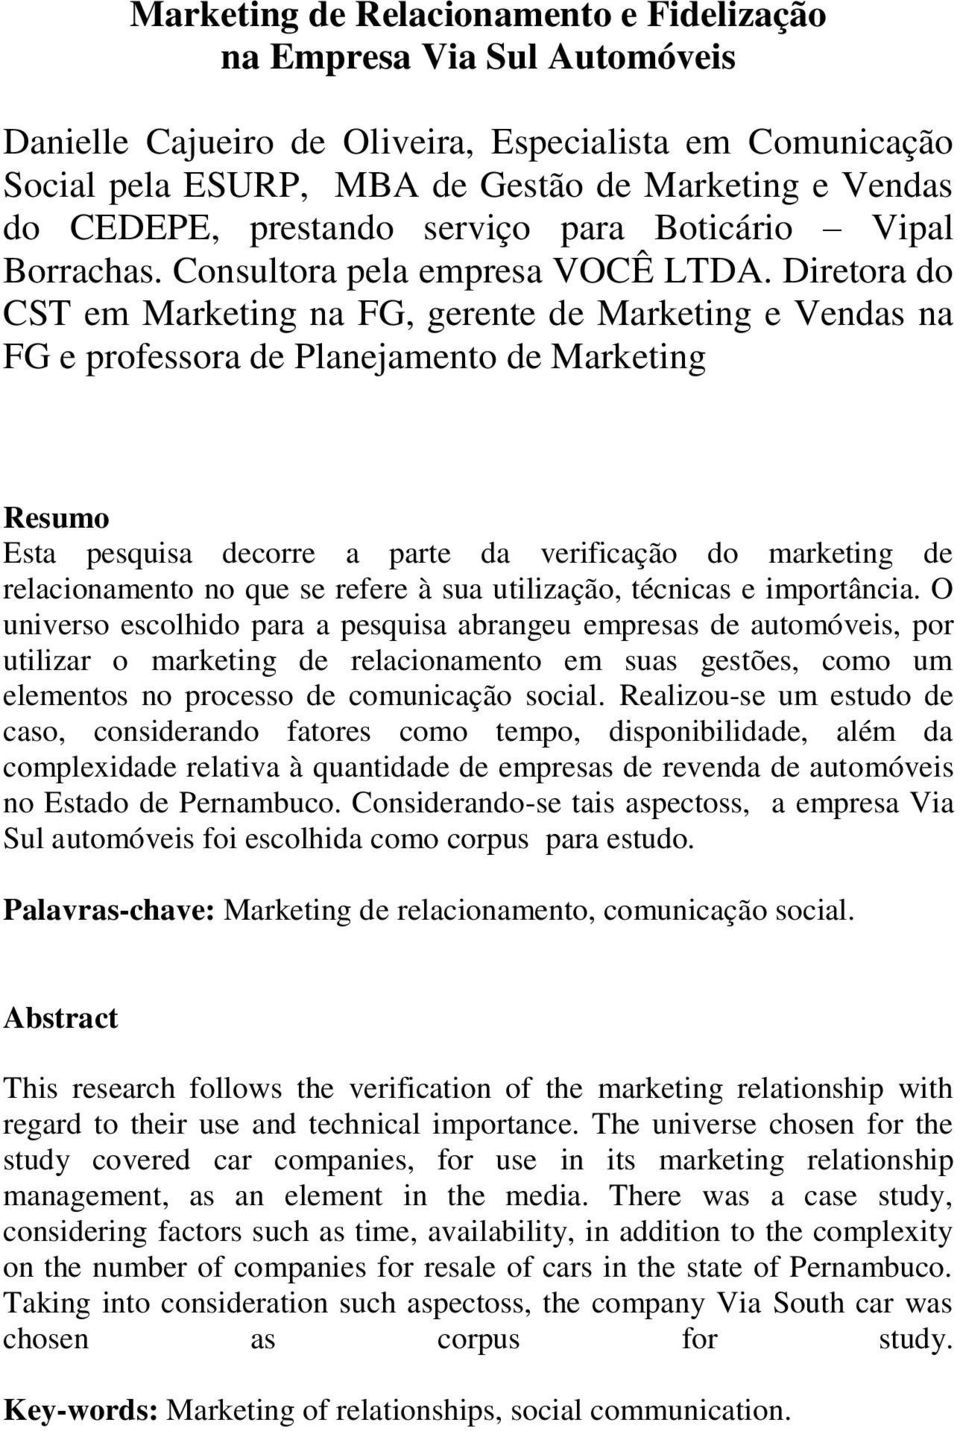 Diretora do CST em Marketing na FG, gerente de Marketing e Vendas na FG e professora de Planejamento de Marketing Resumo Esta pesquisa decorre a parte da verificação do marketing de relacionamento no